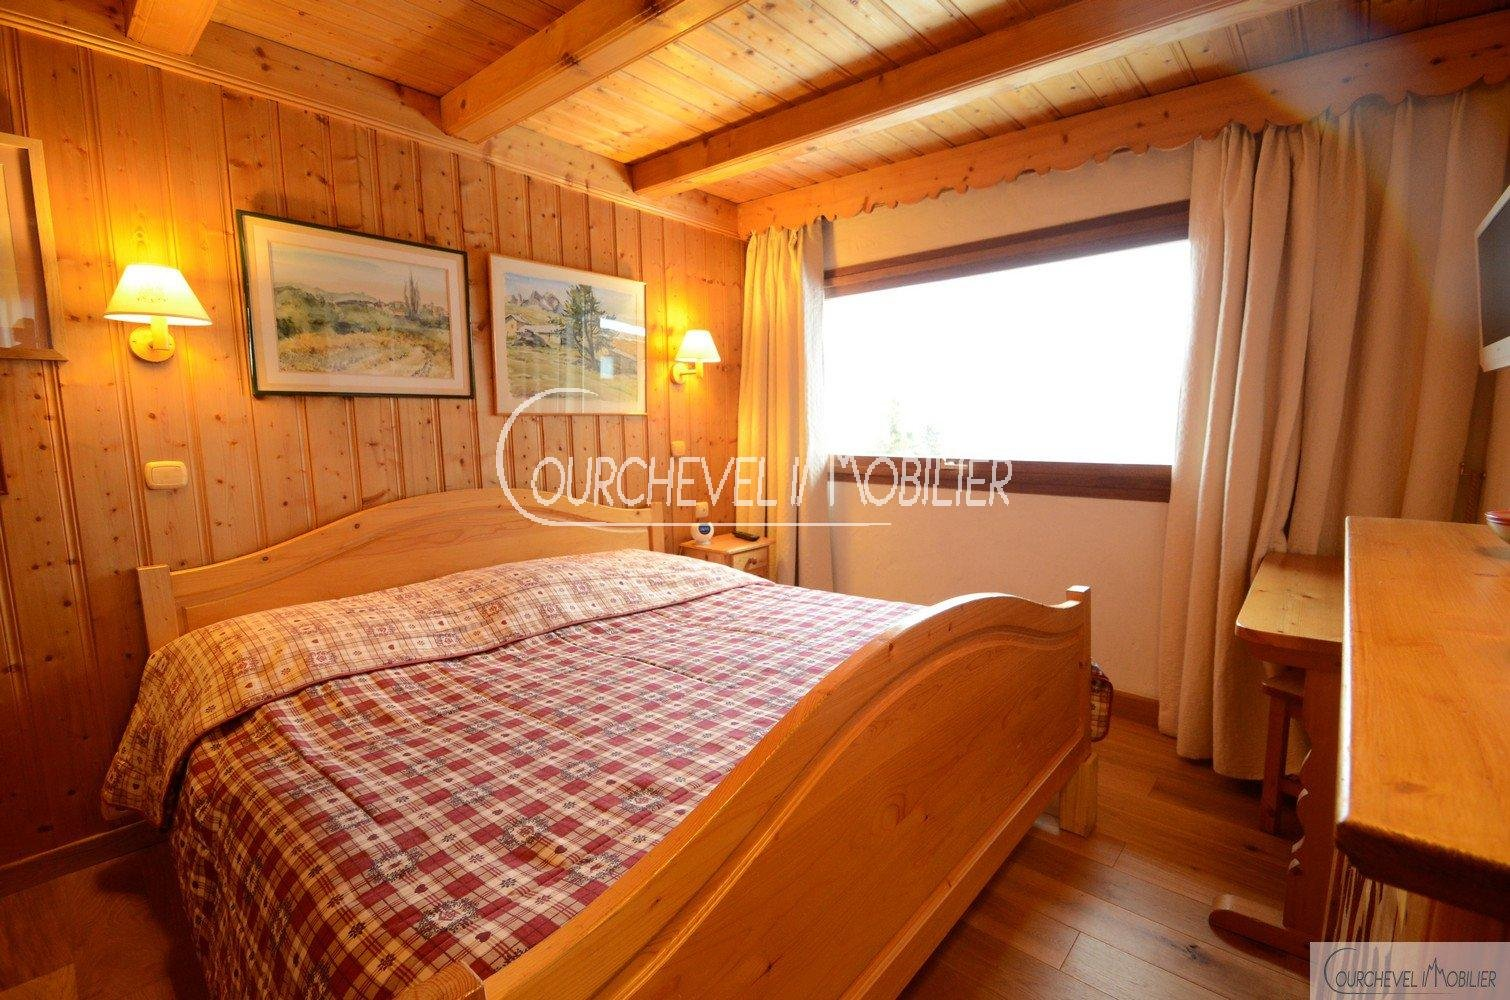 Appartement 2 pi ces courchevel 1850 for Appartement 2 pieces yverdon